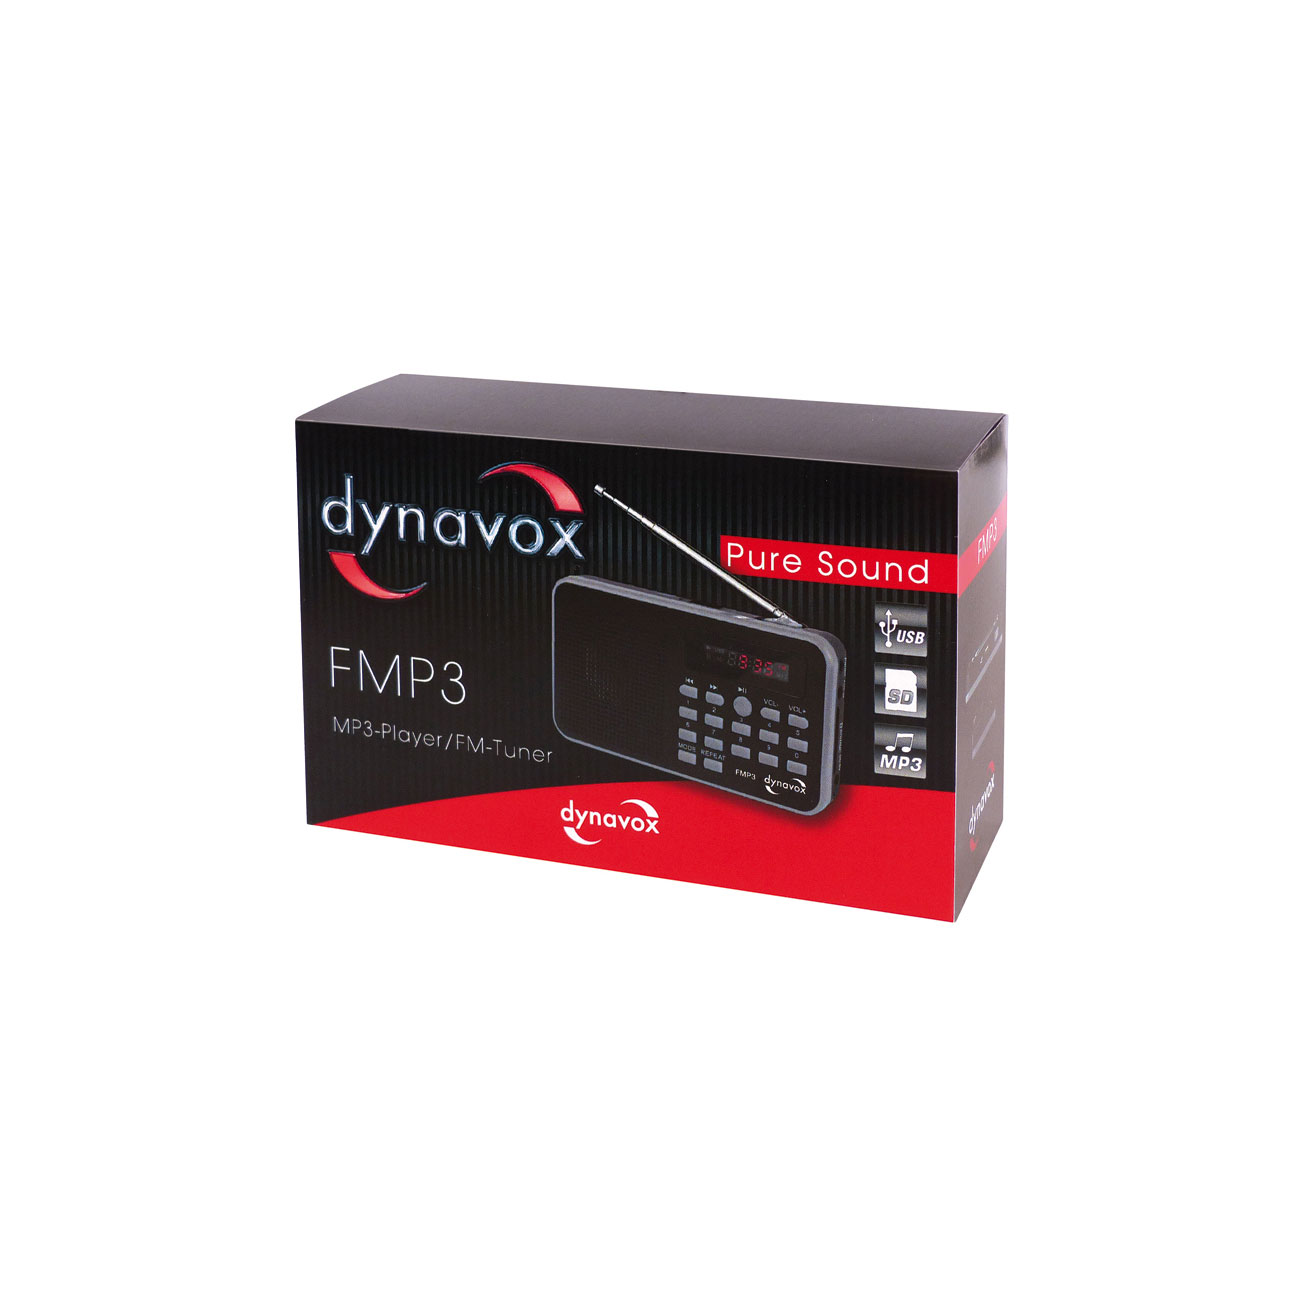 Dynavox MP3-Radio FMP3 4